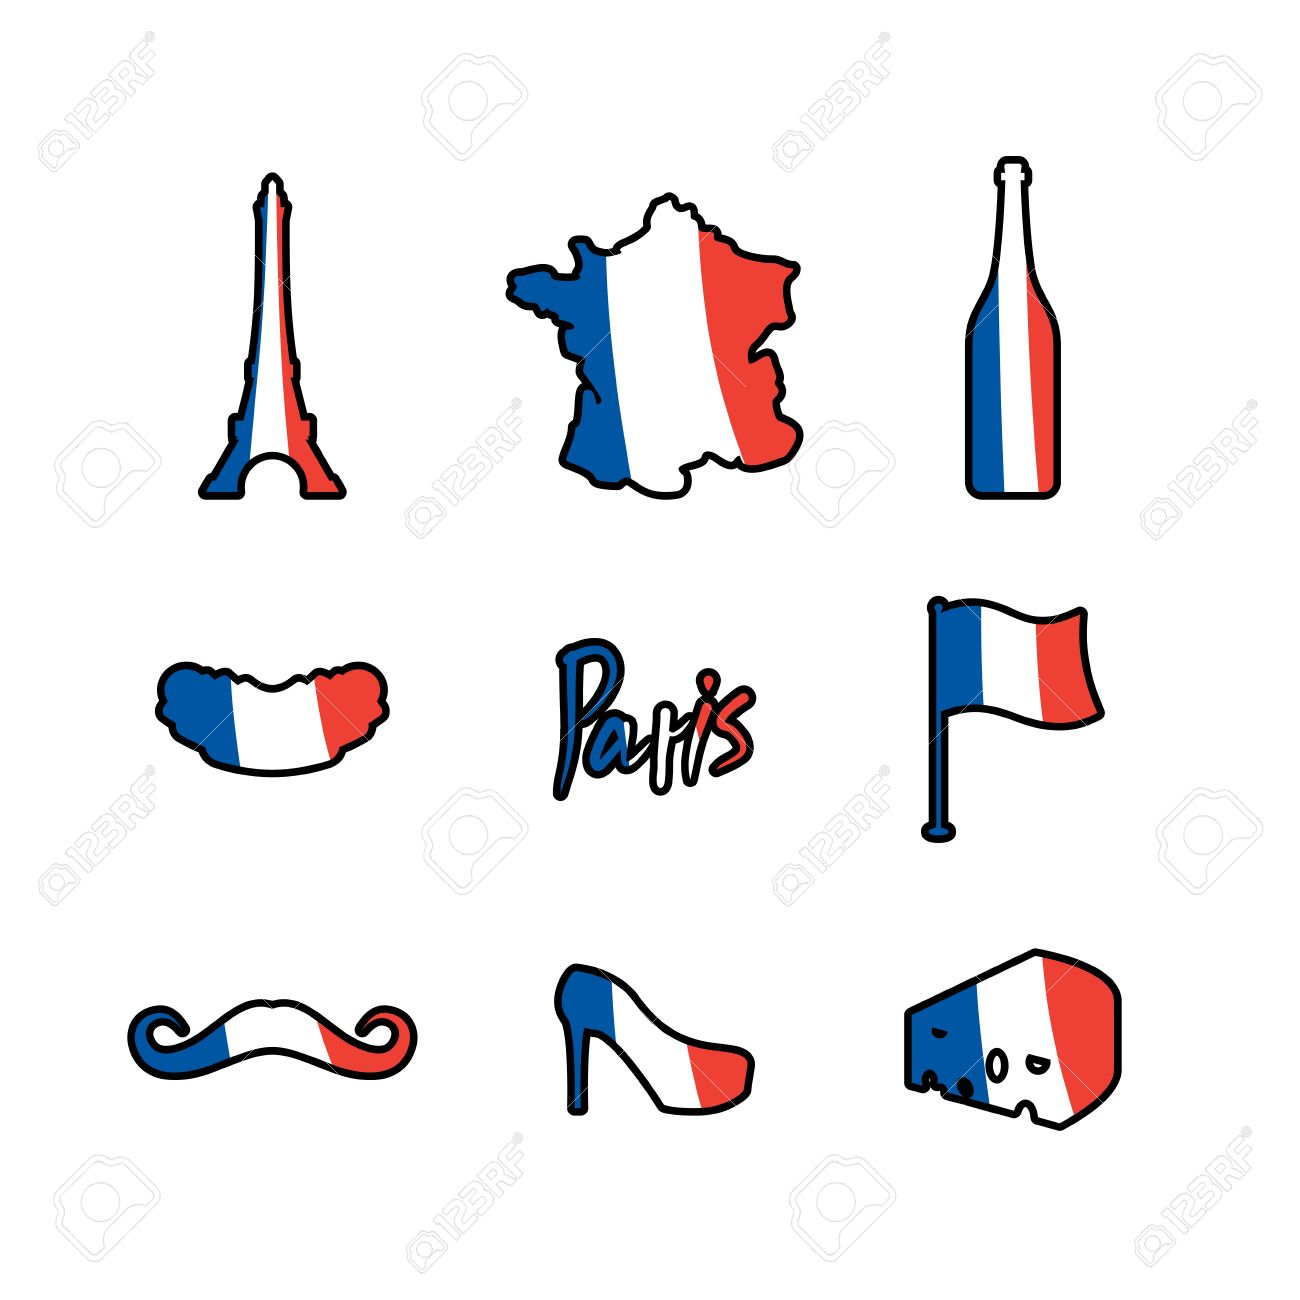 paris icons set traditional french national symbols eiffel rh 123rf com French Symbols and Meanings French Revolution Symbols